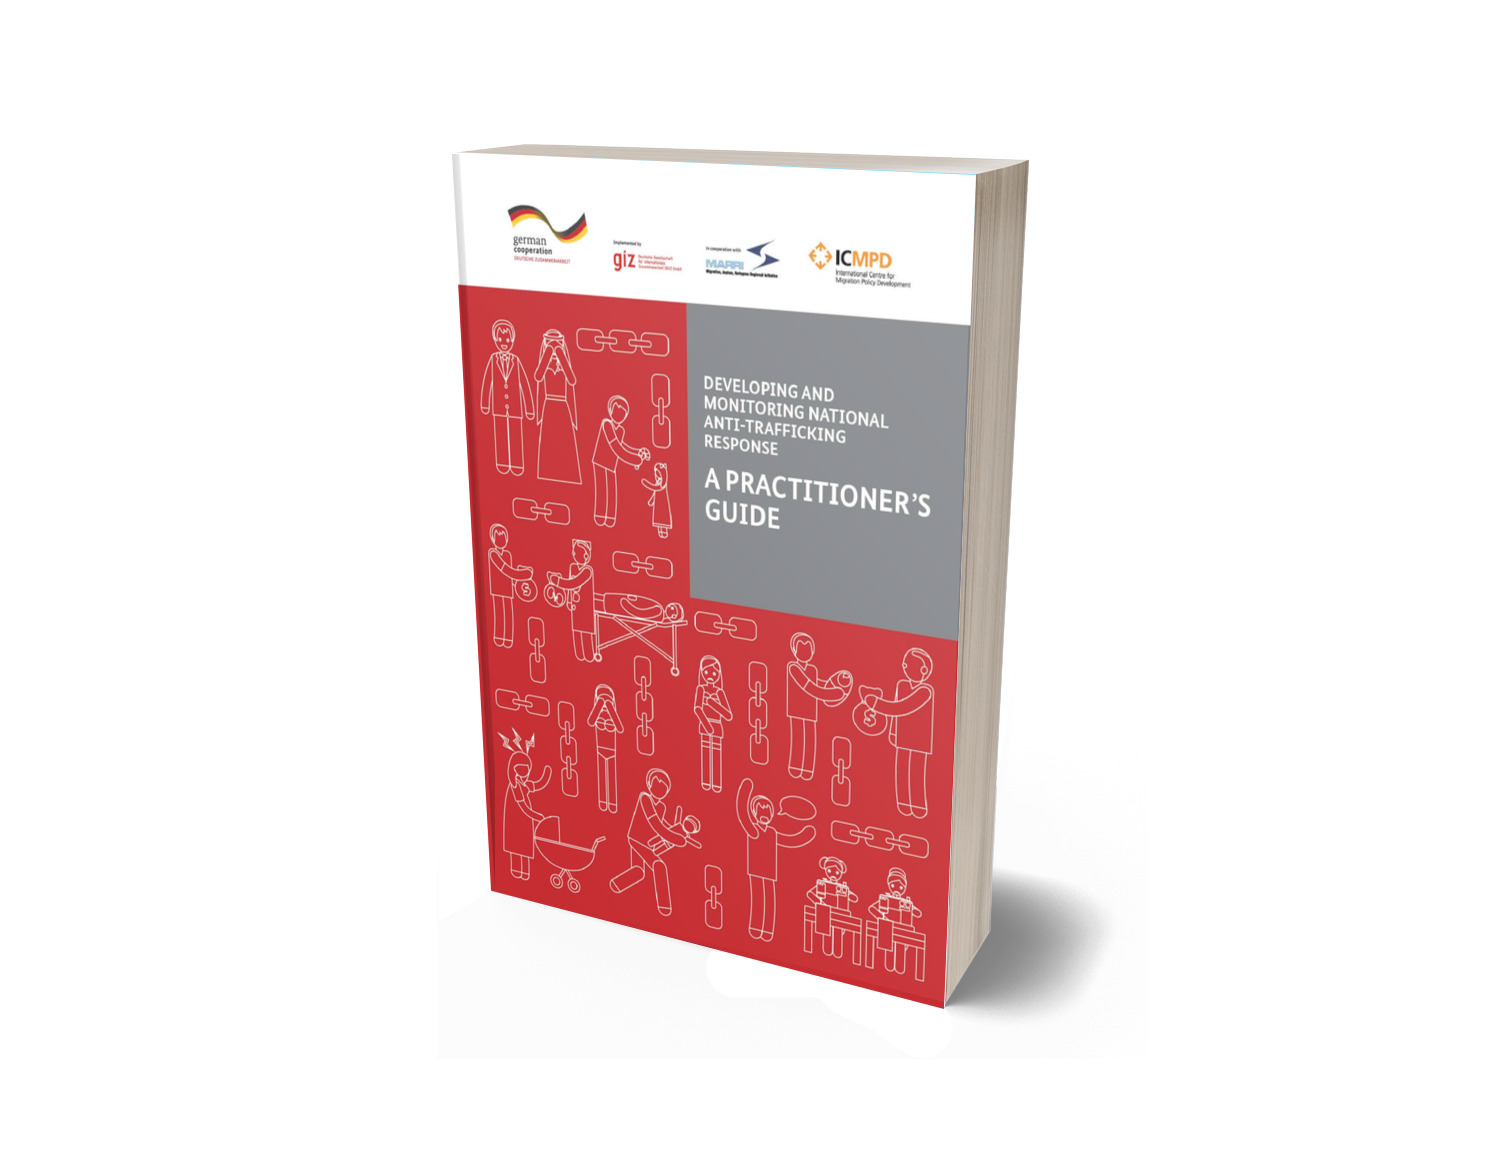 20 May 2021 – Promotion of the ICMPD Practitioner's Guide for Developing Strategies against Trafficking in Human Beings and Action Plans